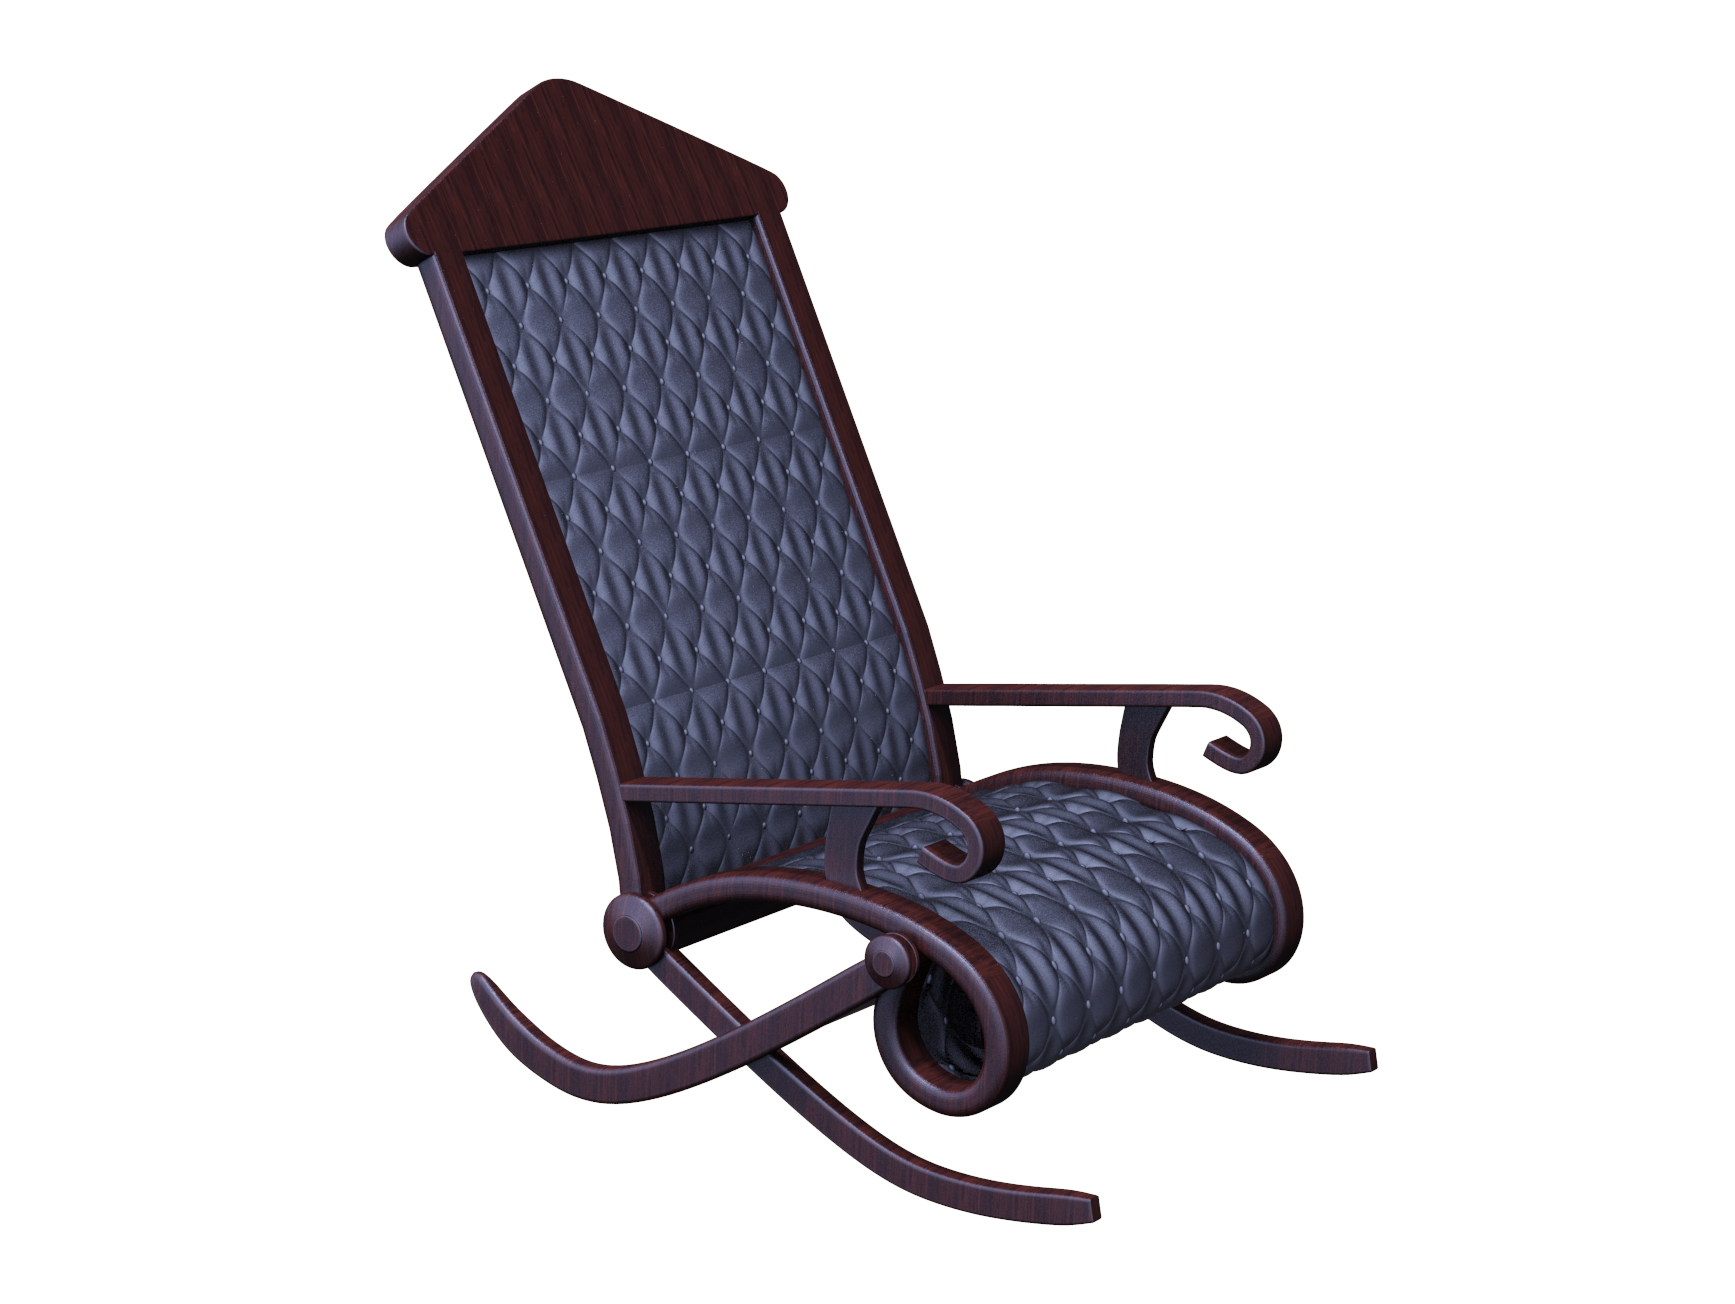 3d Rocking Chair Rocking Chair Rocking Chair Chair Outdoor Chairs